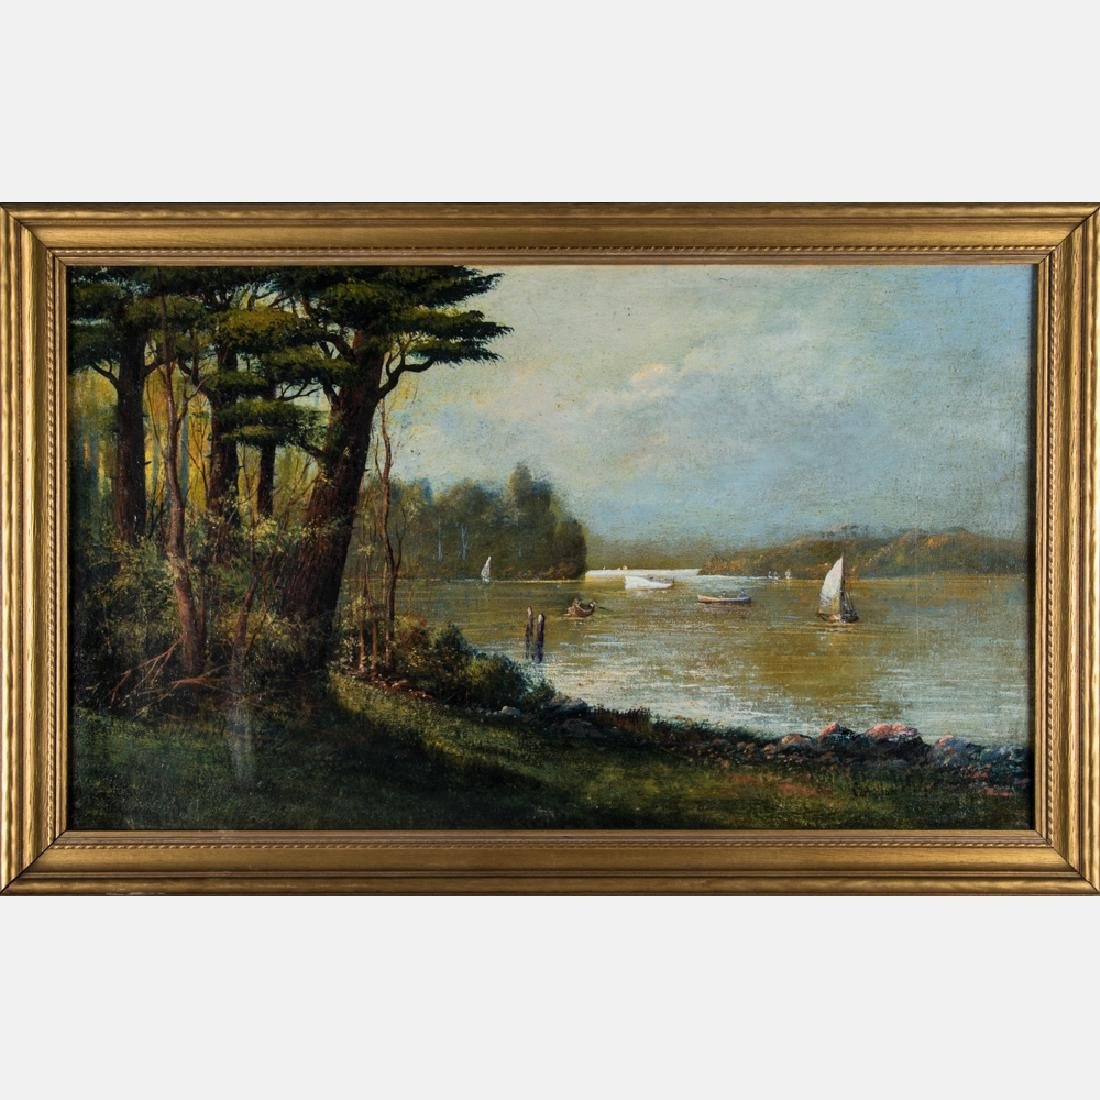 Artist Unknown (19th/20th Century) River Landscape with